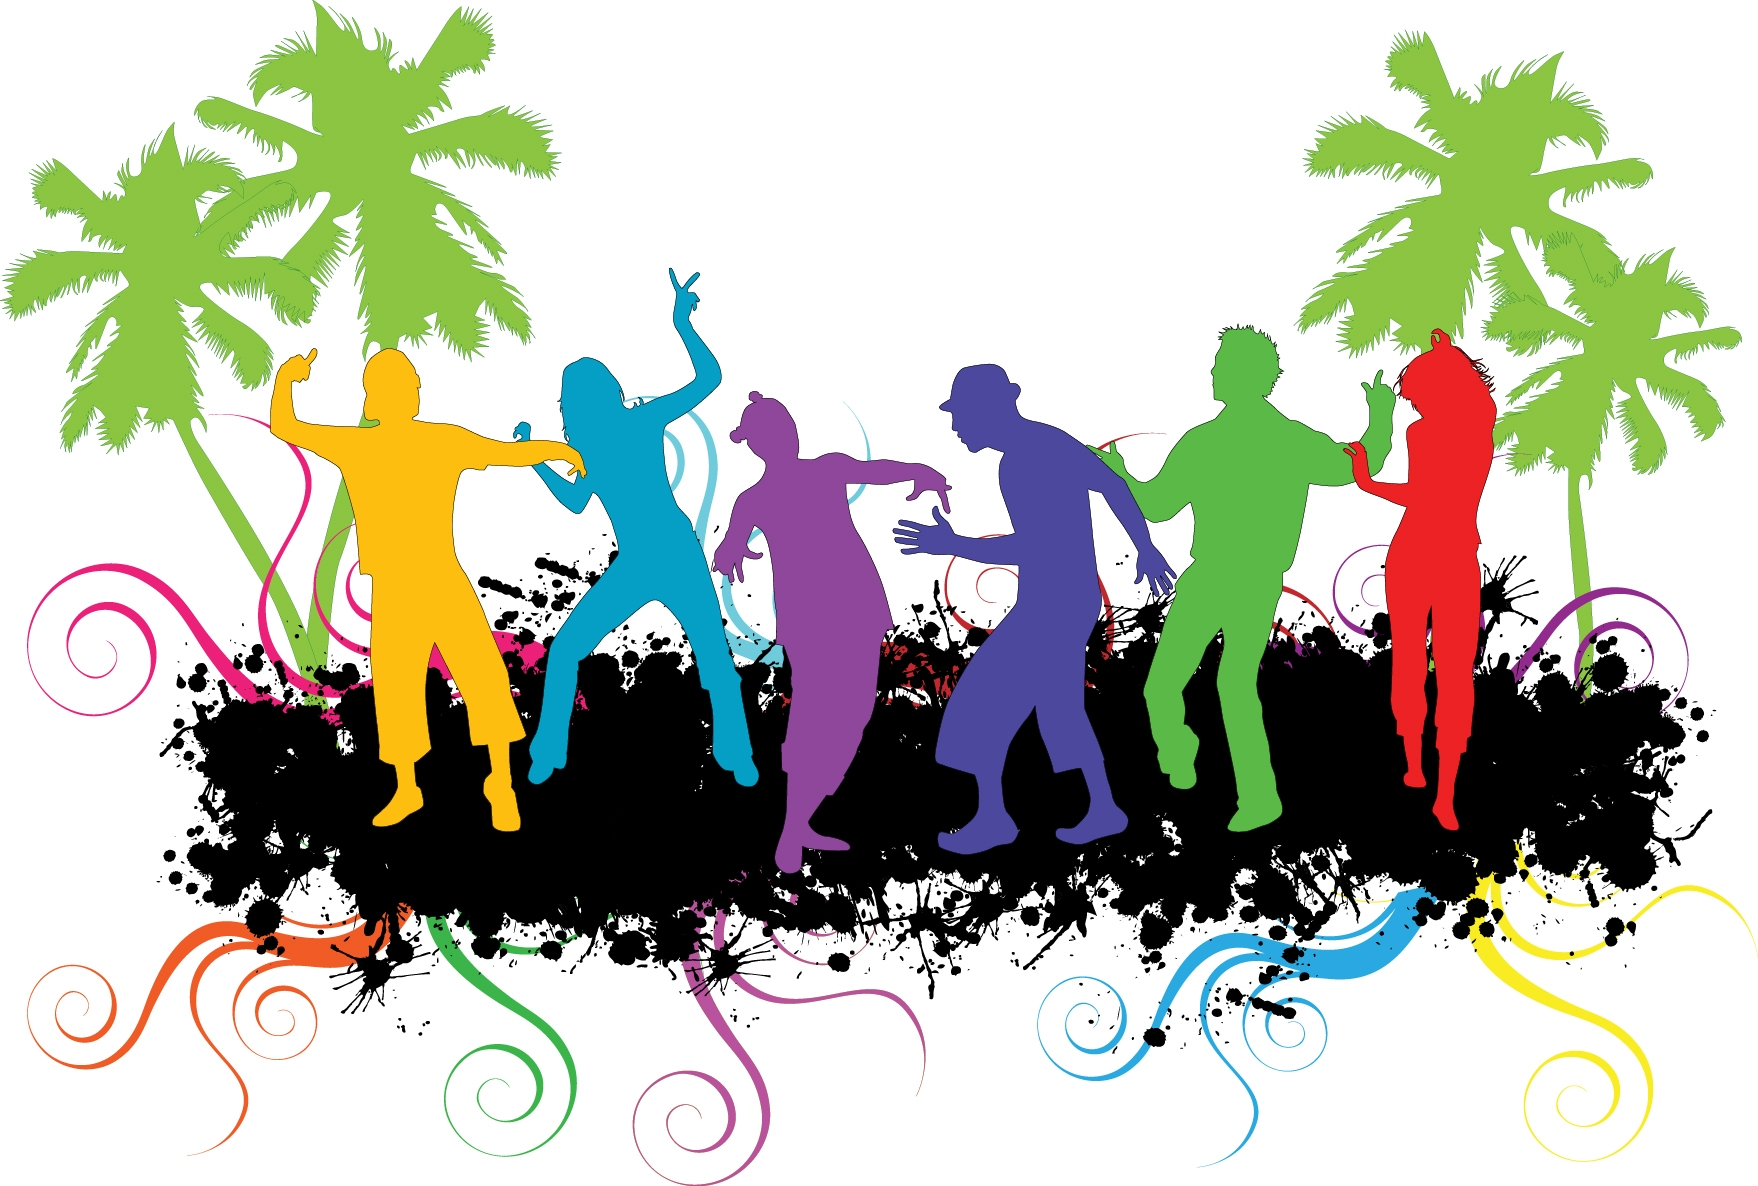 Free Dance Party Cliparts, Download Free Clip Art, Free Clip Art on.